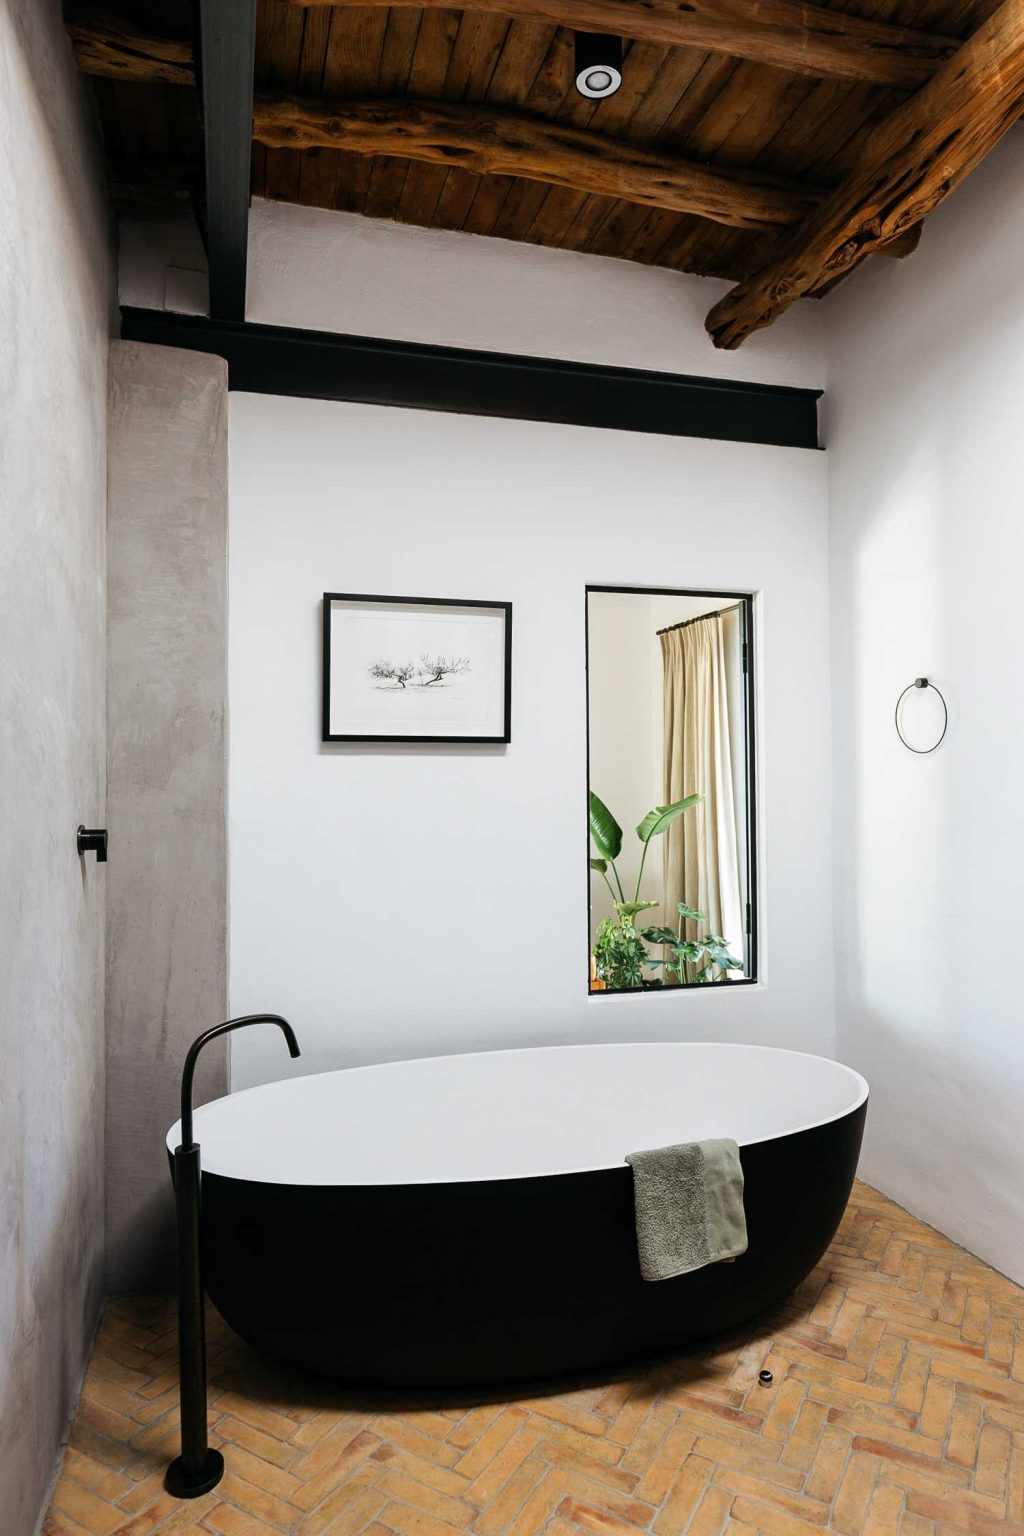 Boost Your Bathroom's Beauty: How to Choose the Perfect Bathtub